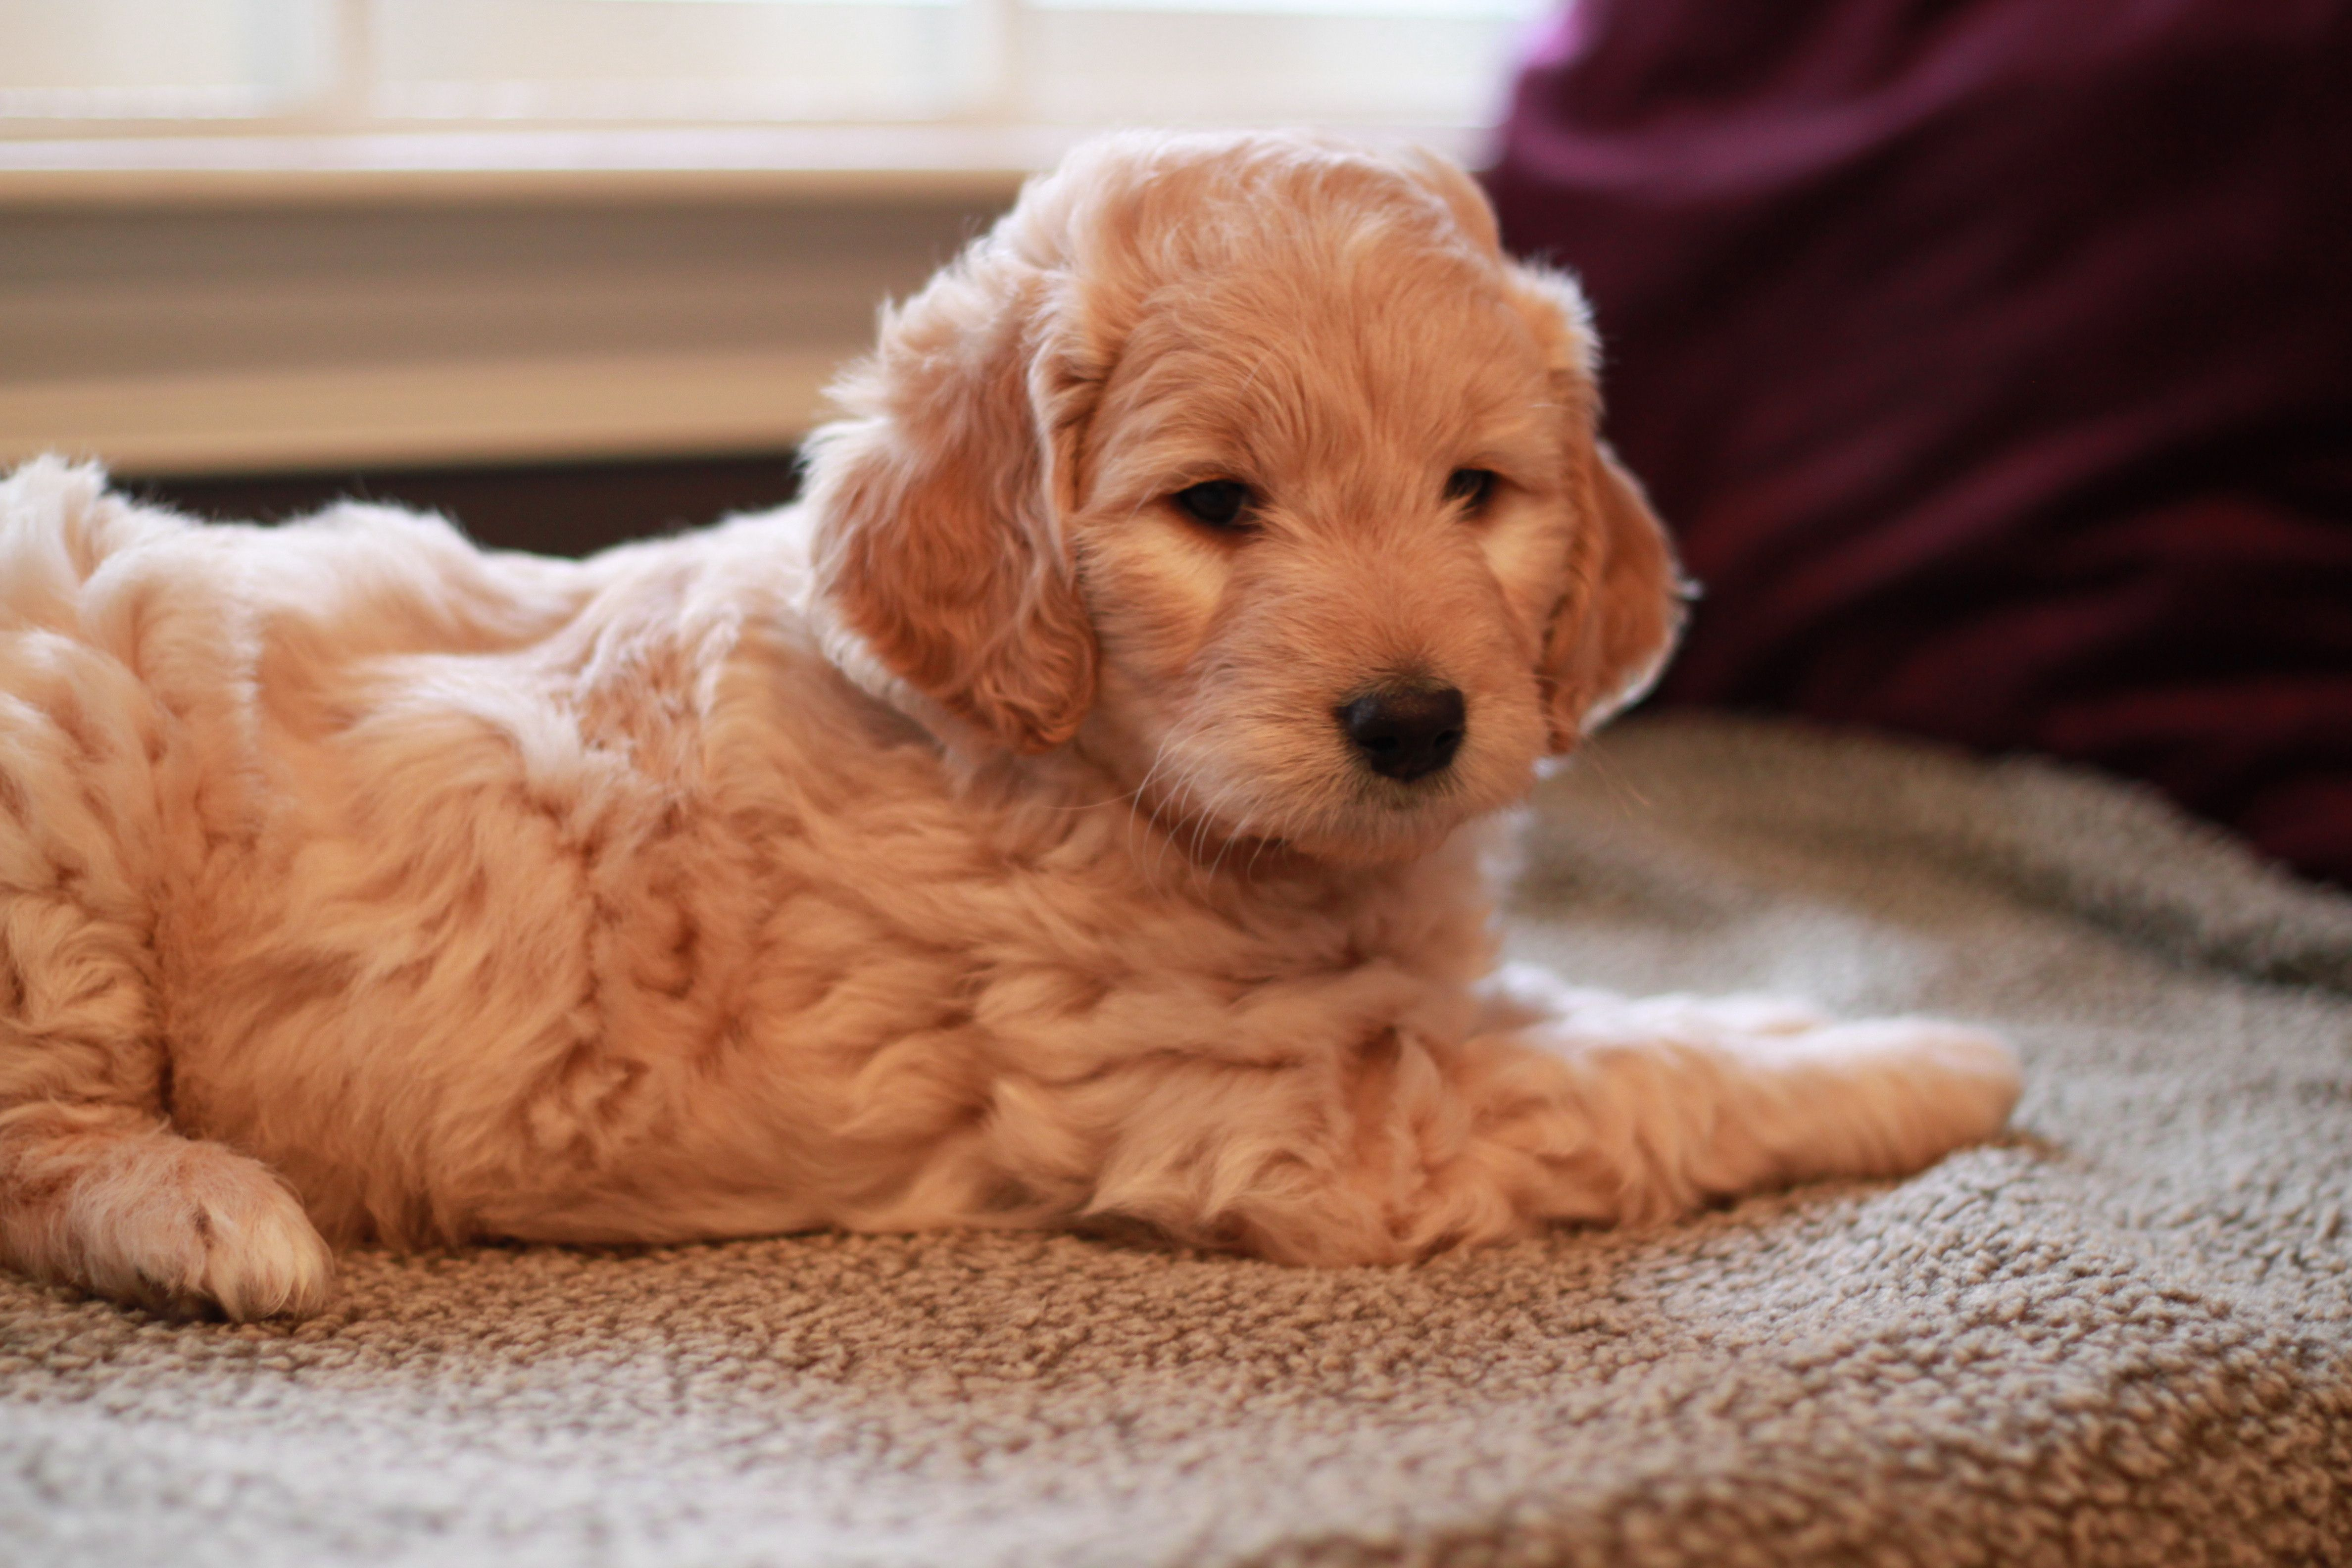 Einstein The Goldendoodle Puppy From River Valley Doodles